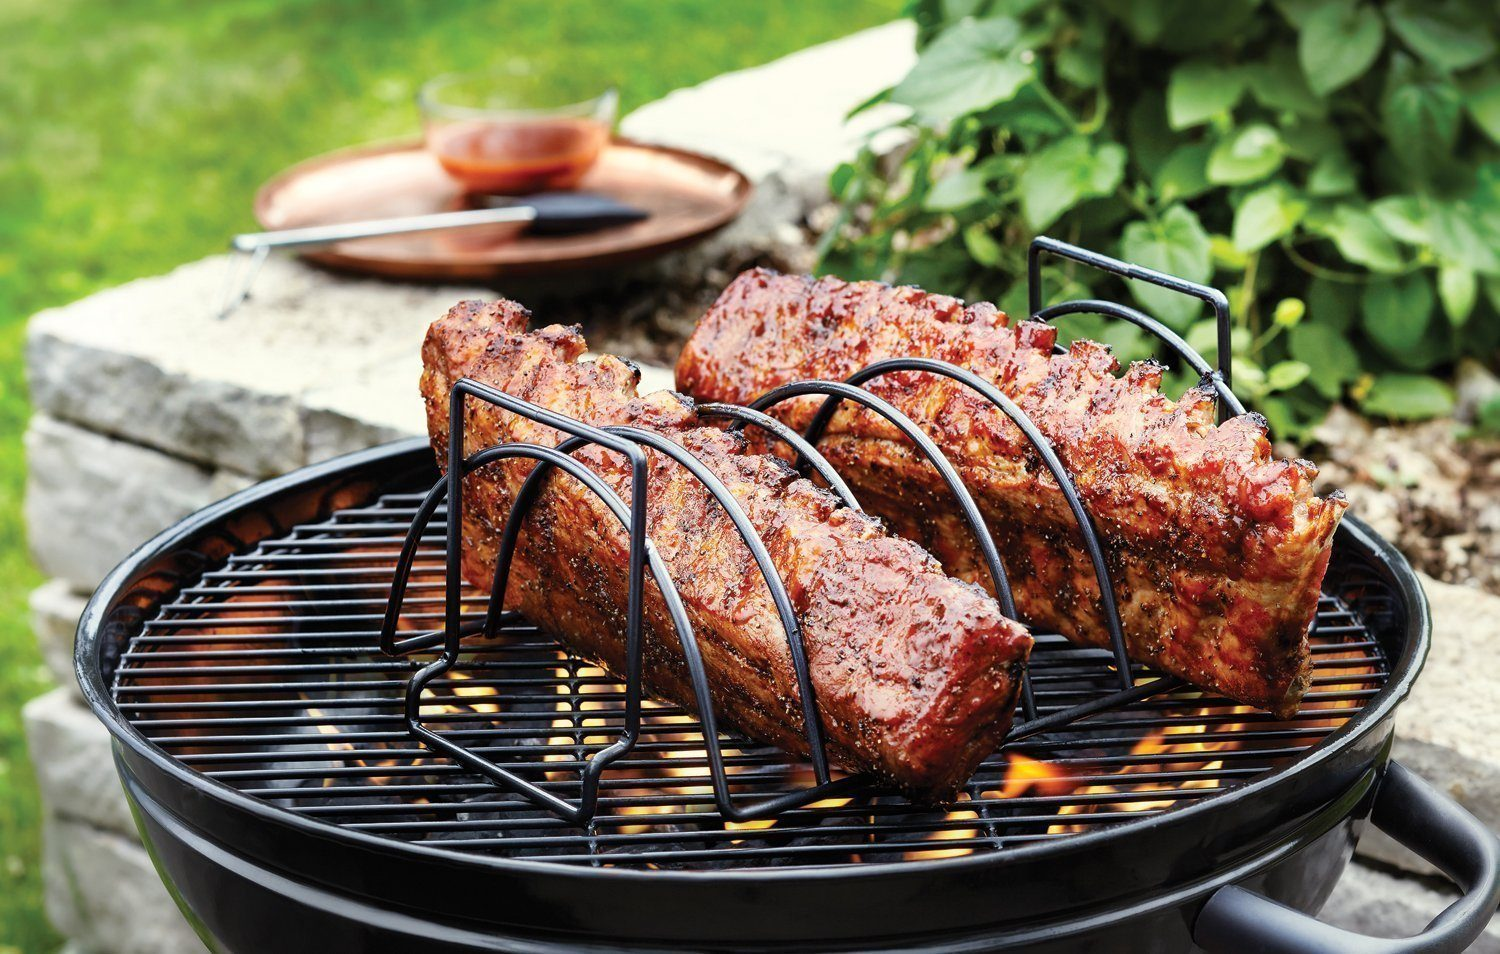 Rib rack on charcoal grill with ribs